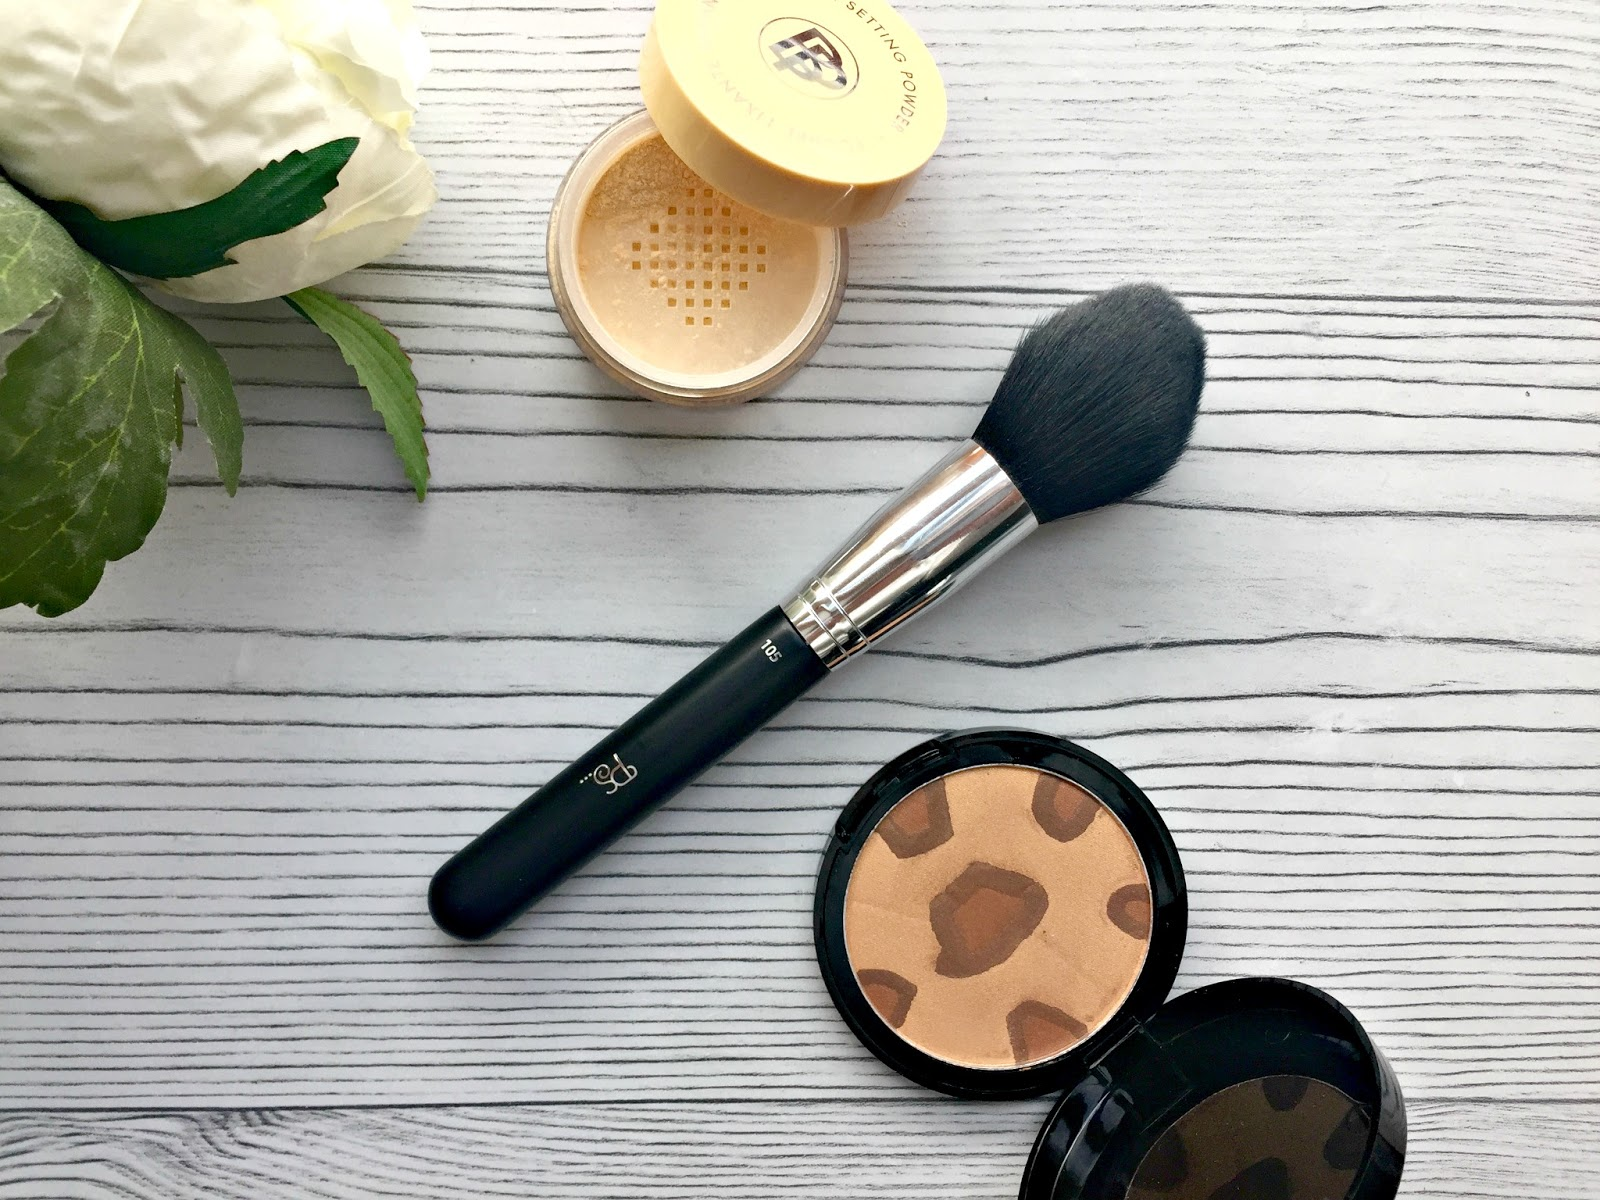 Primark PS Pro Makeup Brushes